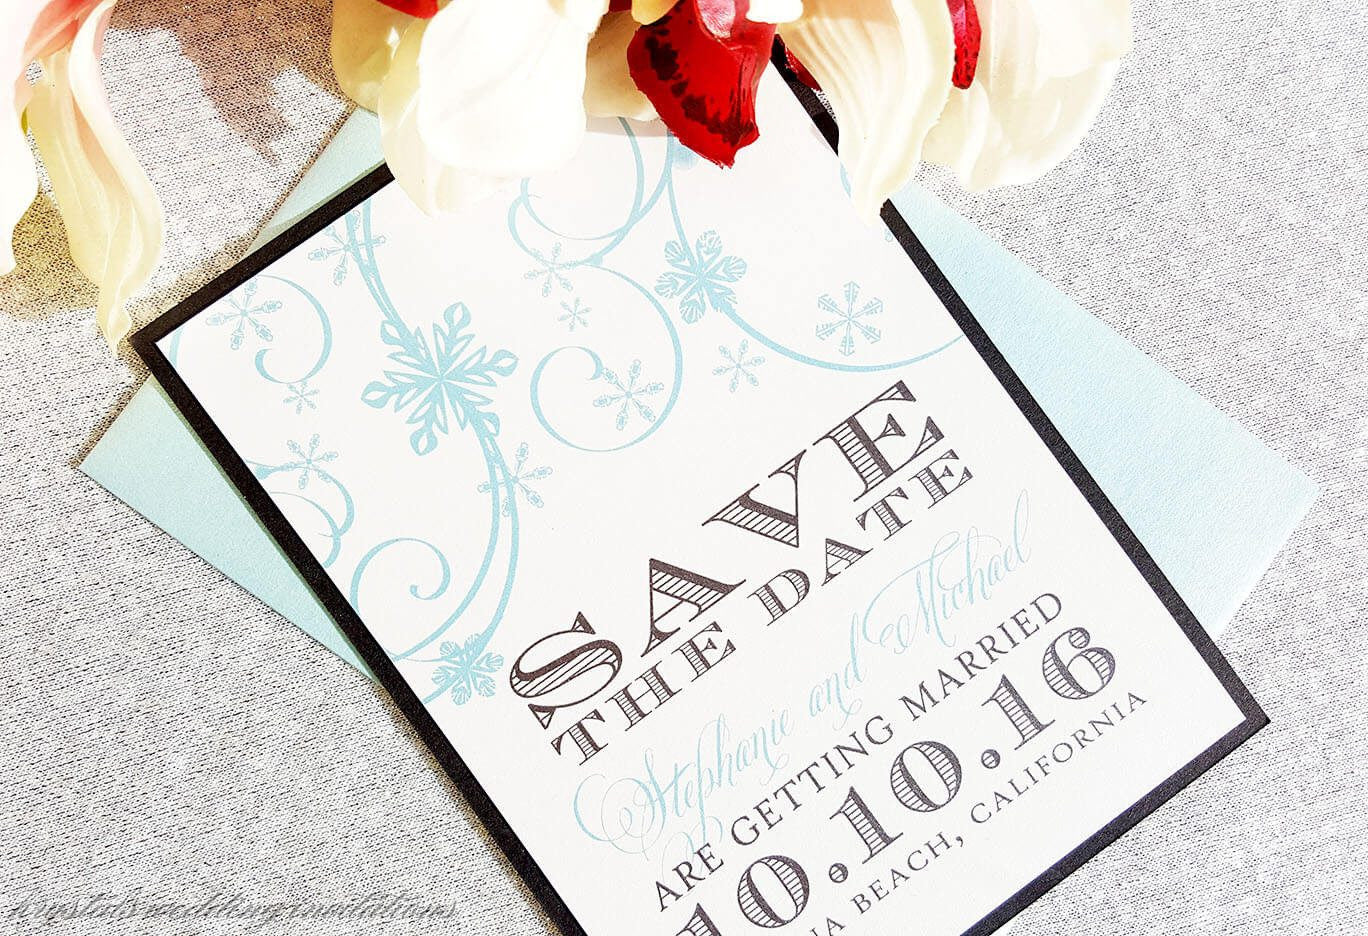 Save The Dates - Winter Wonderland Chic Save The Dates